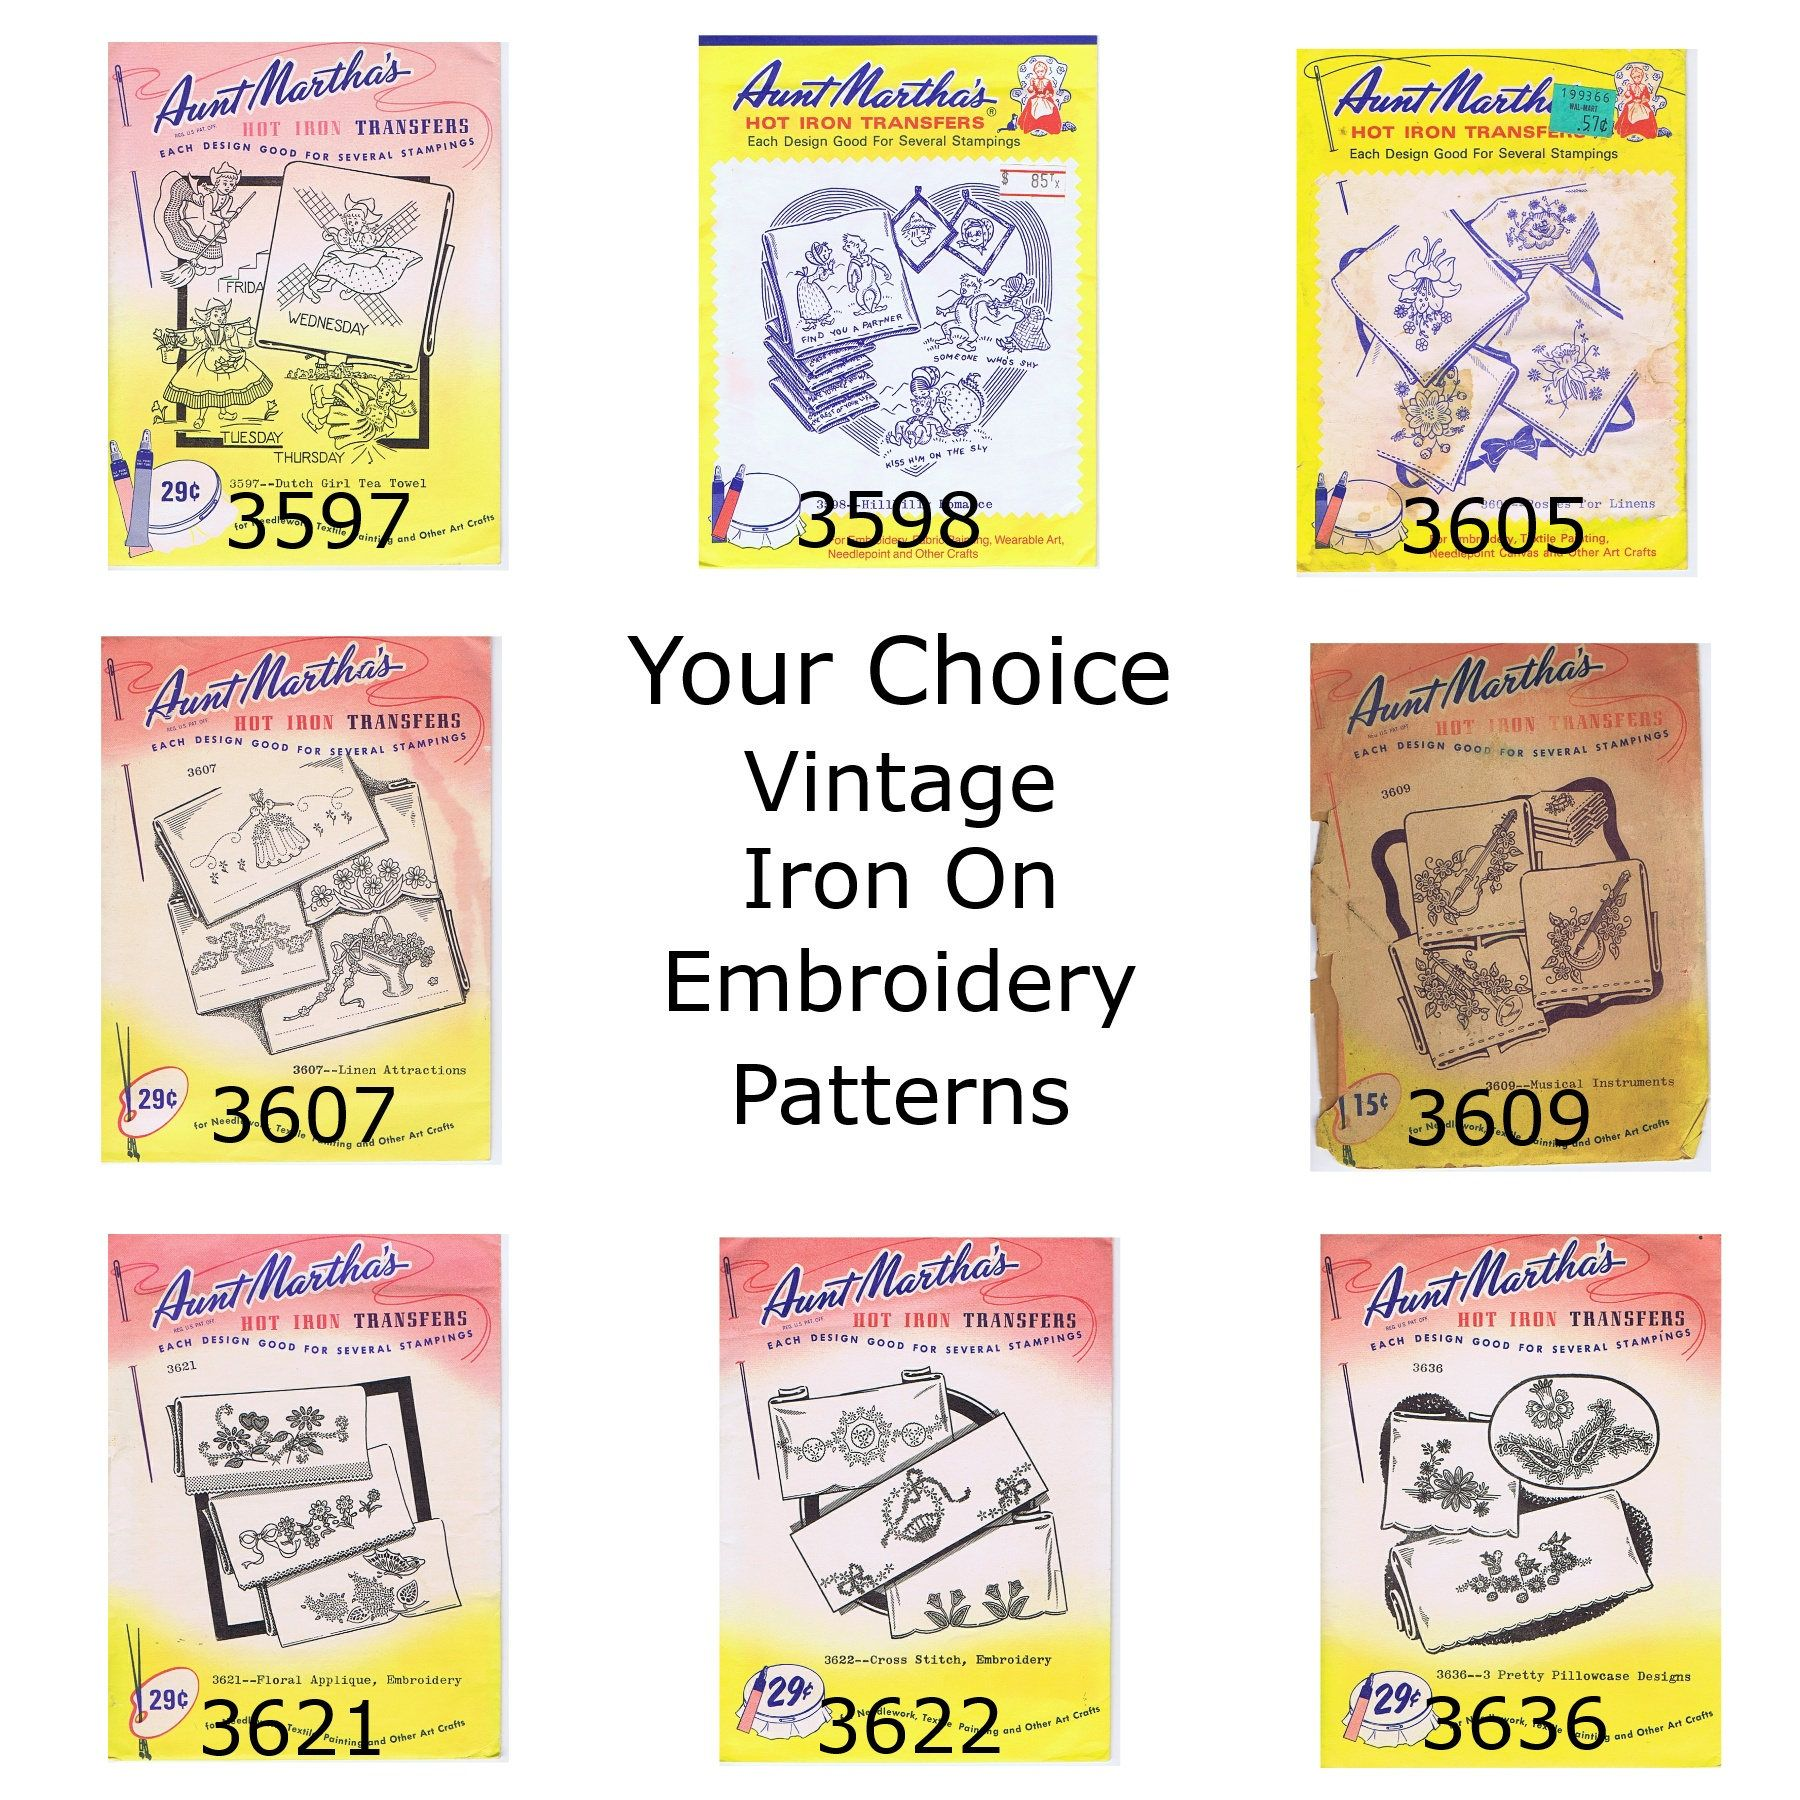 Embroidery iron on patterns your choice dutch girl hillbilly romance